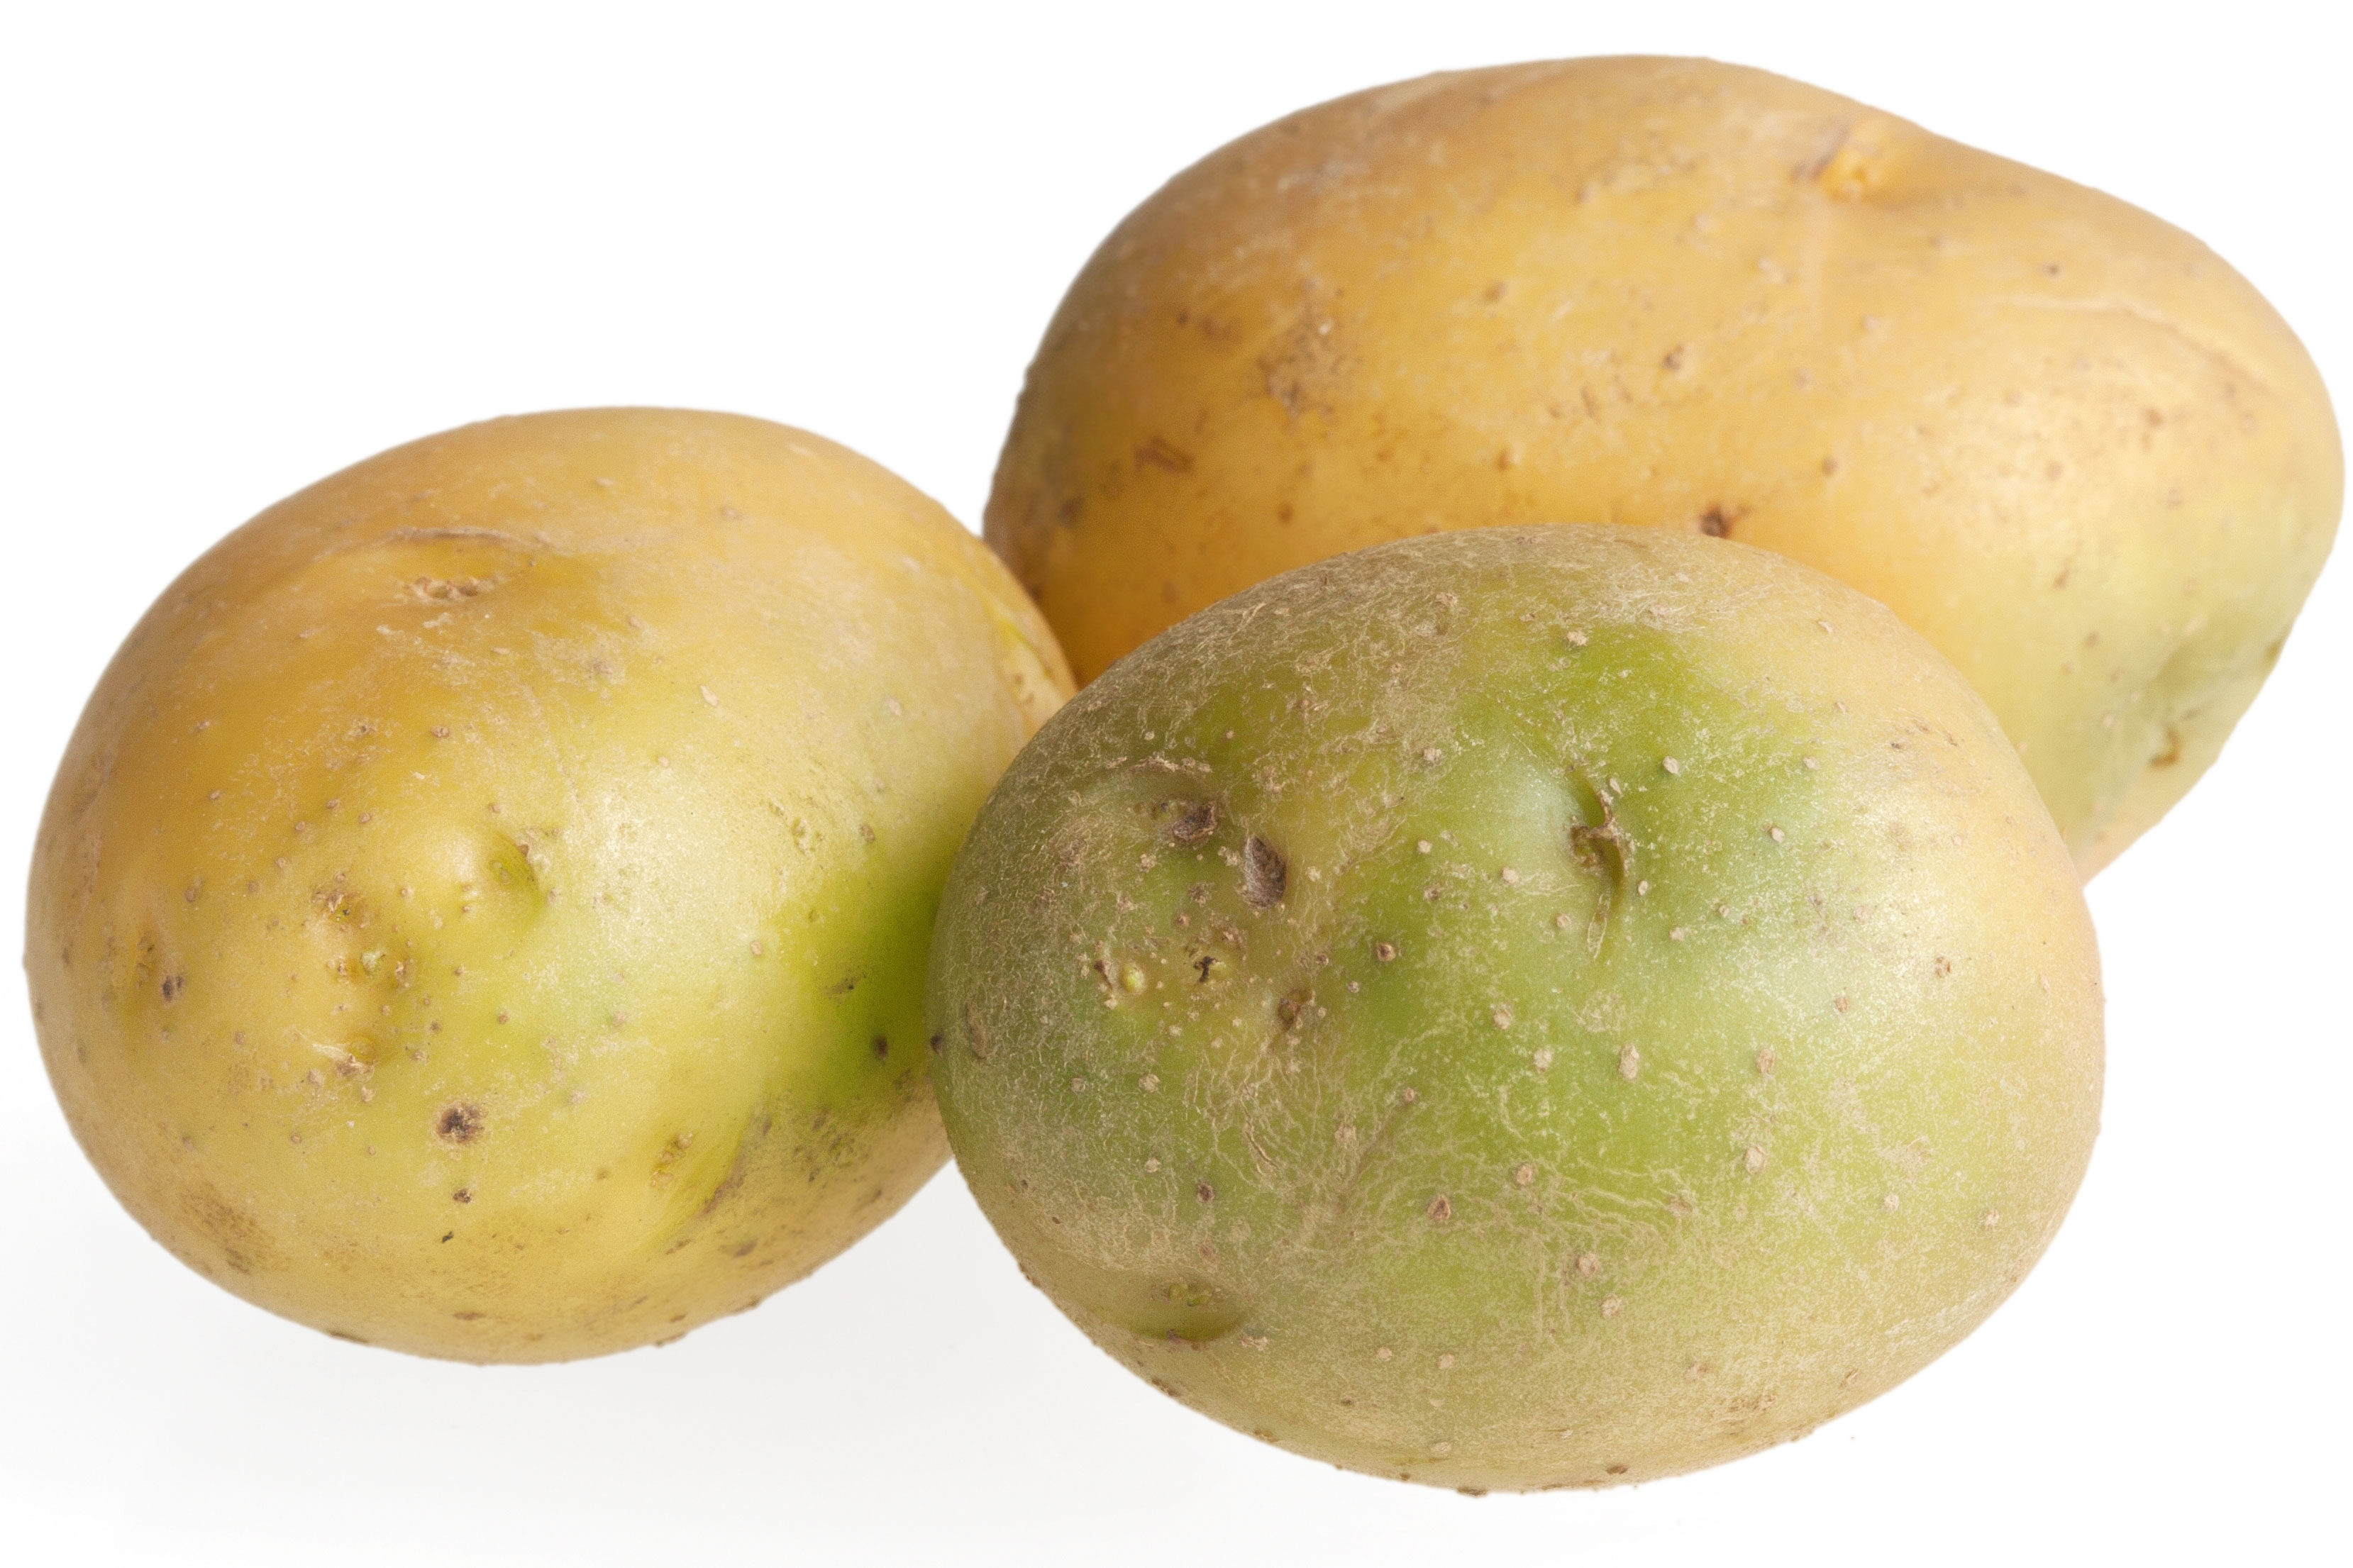 3 green potatoes